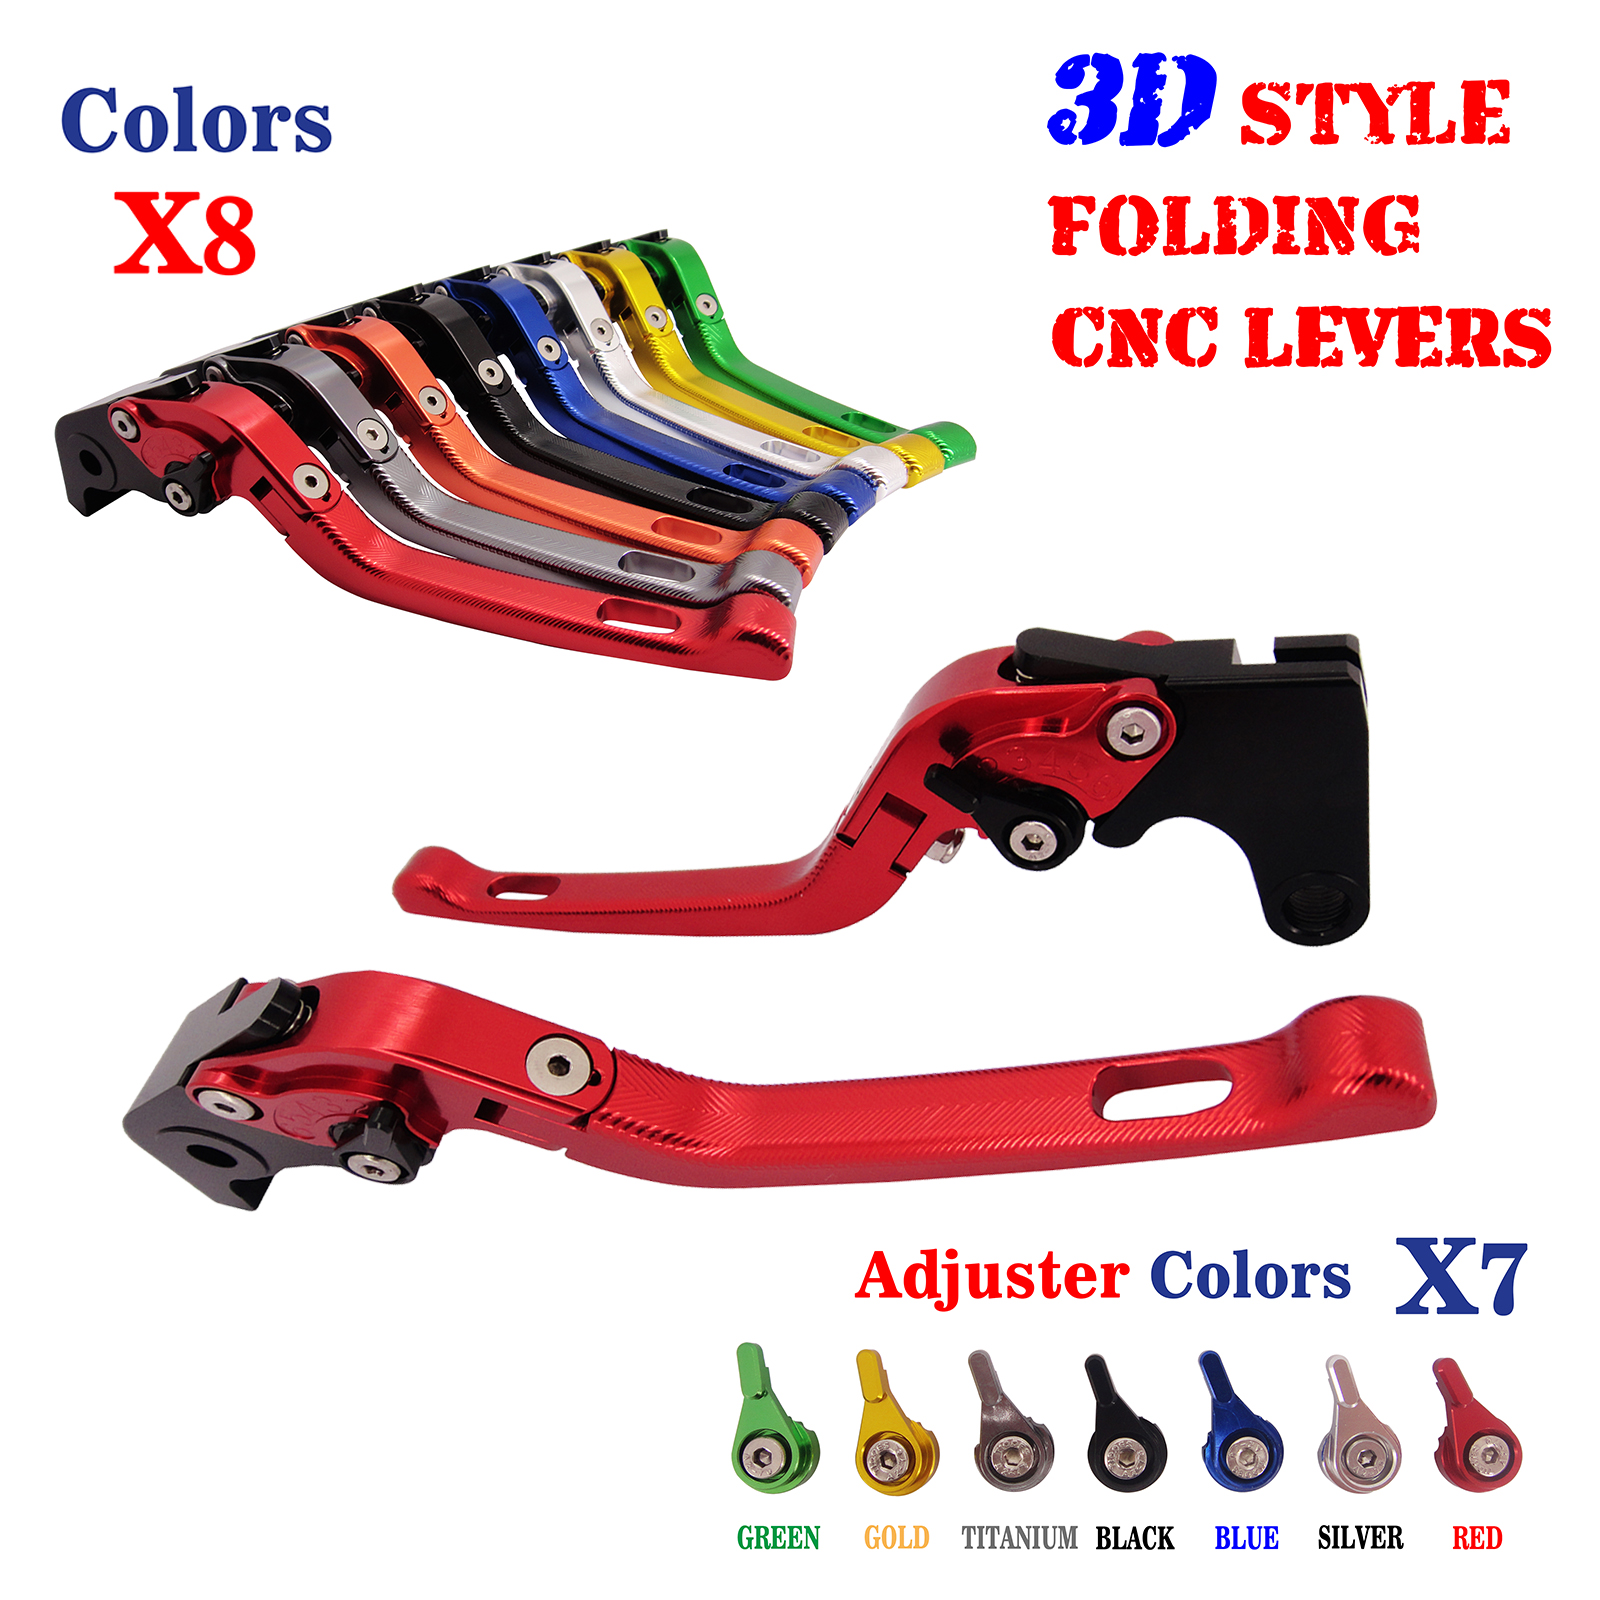 CNC 3D Feel Folding Brake Clutch Lever For Yamaha TDM850 1991-2001 XJ900S Diversion 1995-2002 FZX250 Zeal 1991 1992 new